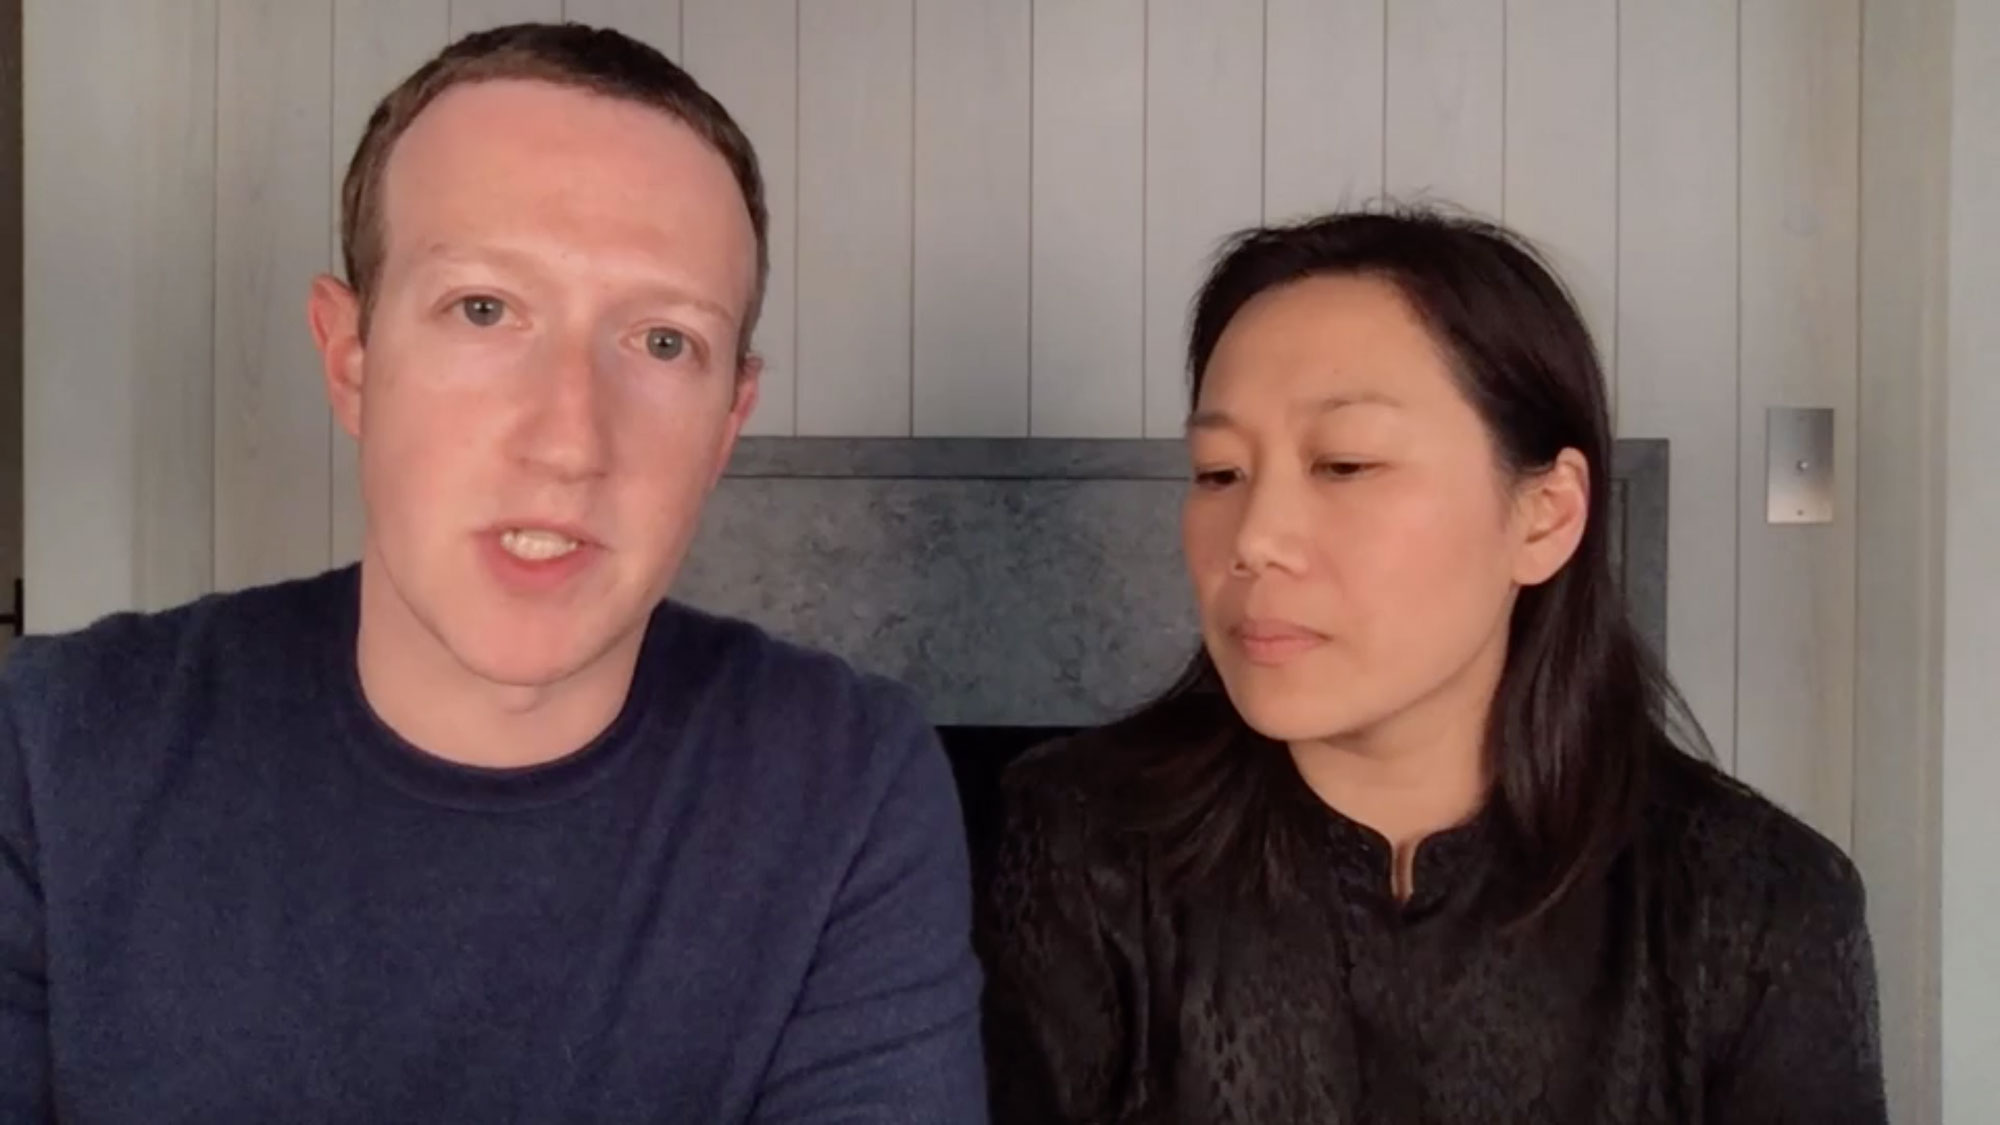 Facebook CEO Mark Zuckerberg and Dr. Priscilla Chan